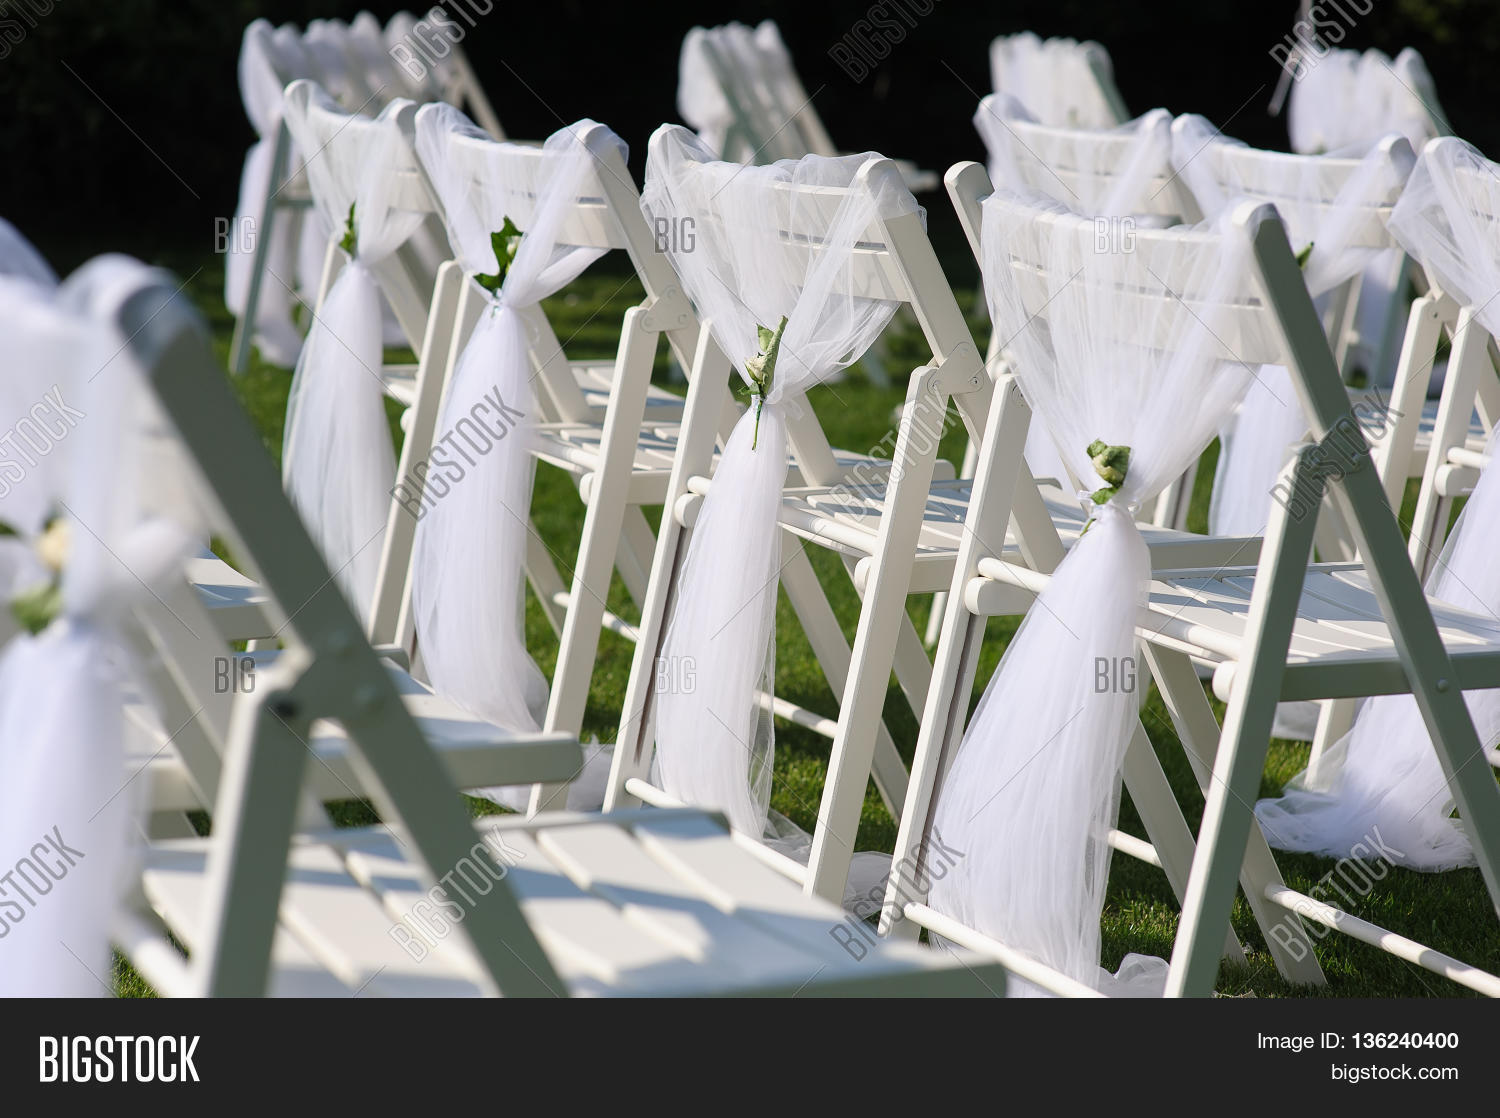 White Chair Small Image Photo Free Trial Bigstock